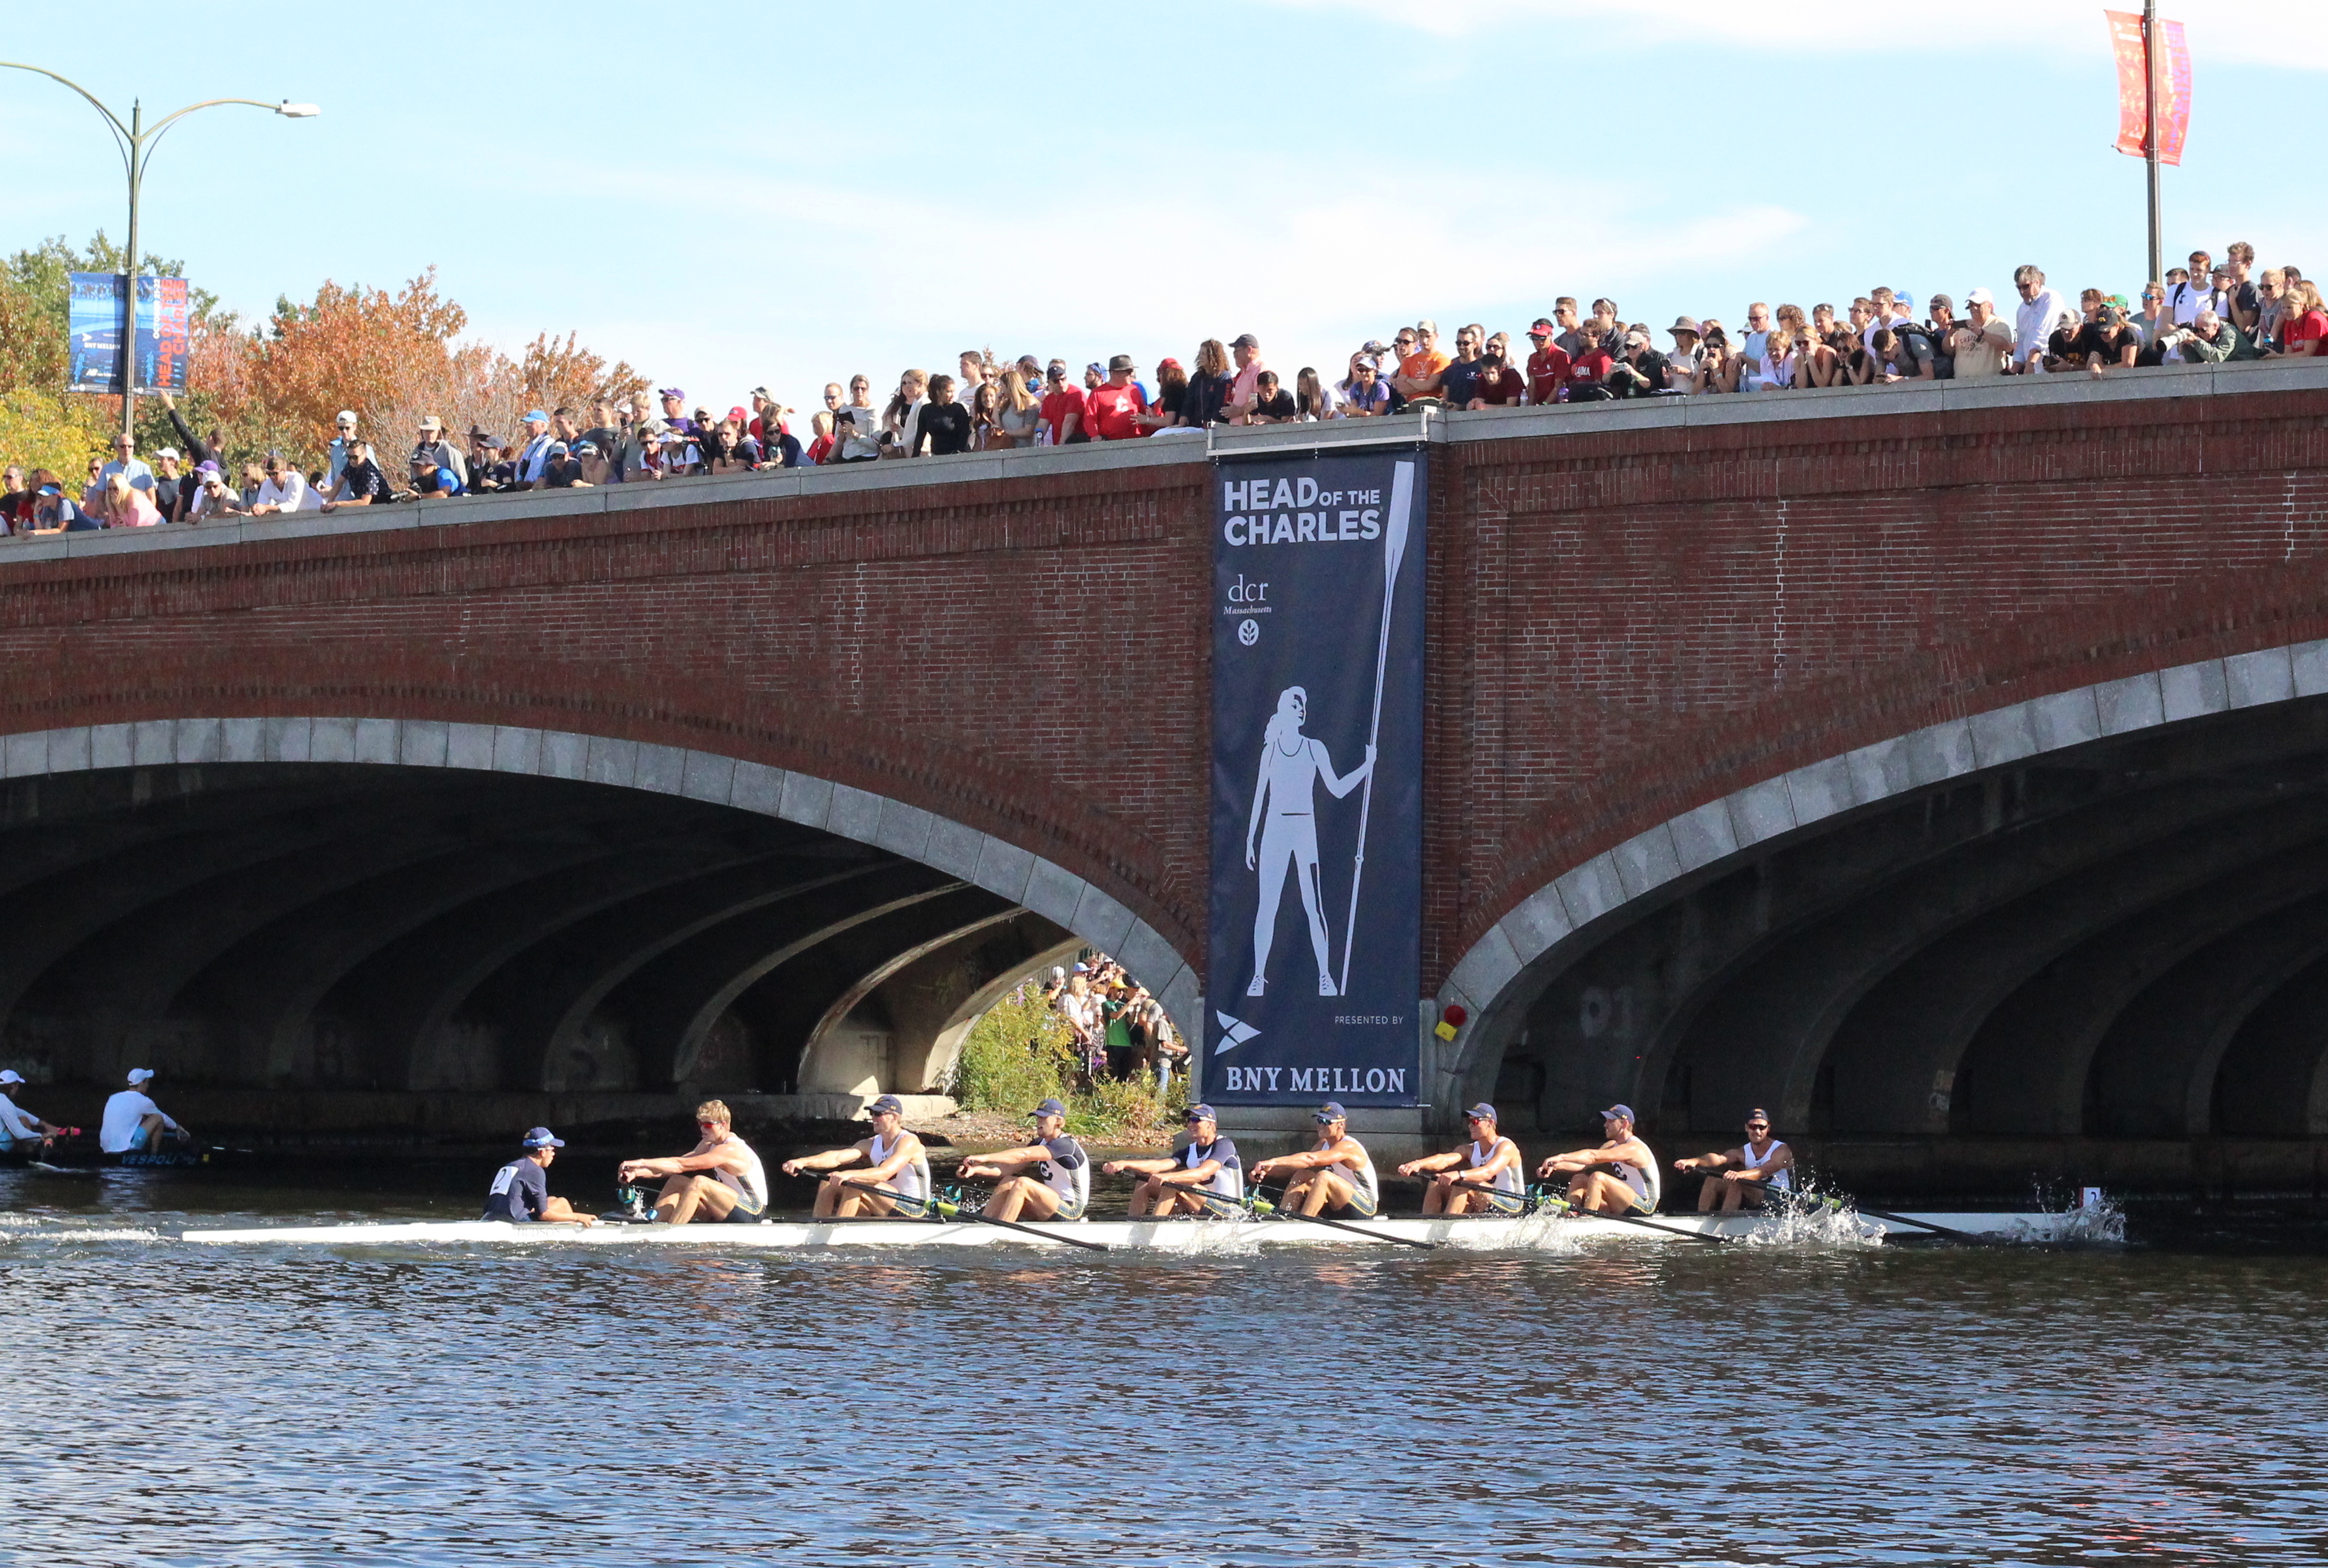 Men's Champ Eights, Cal too Much for Competition, and Course Record